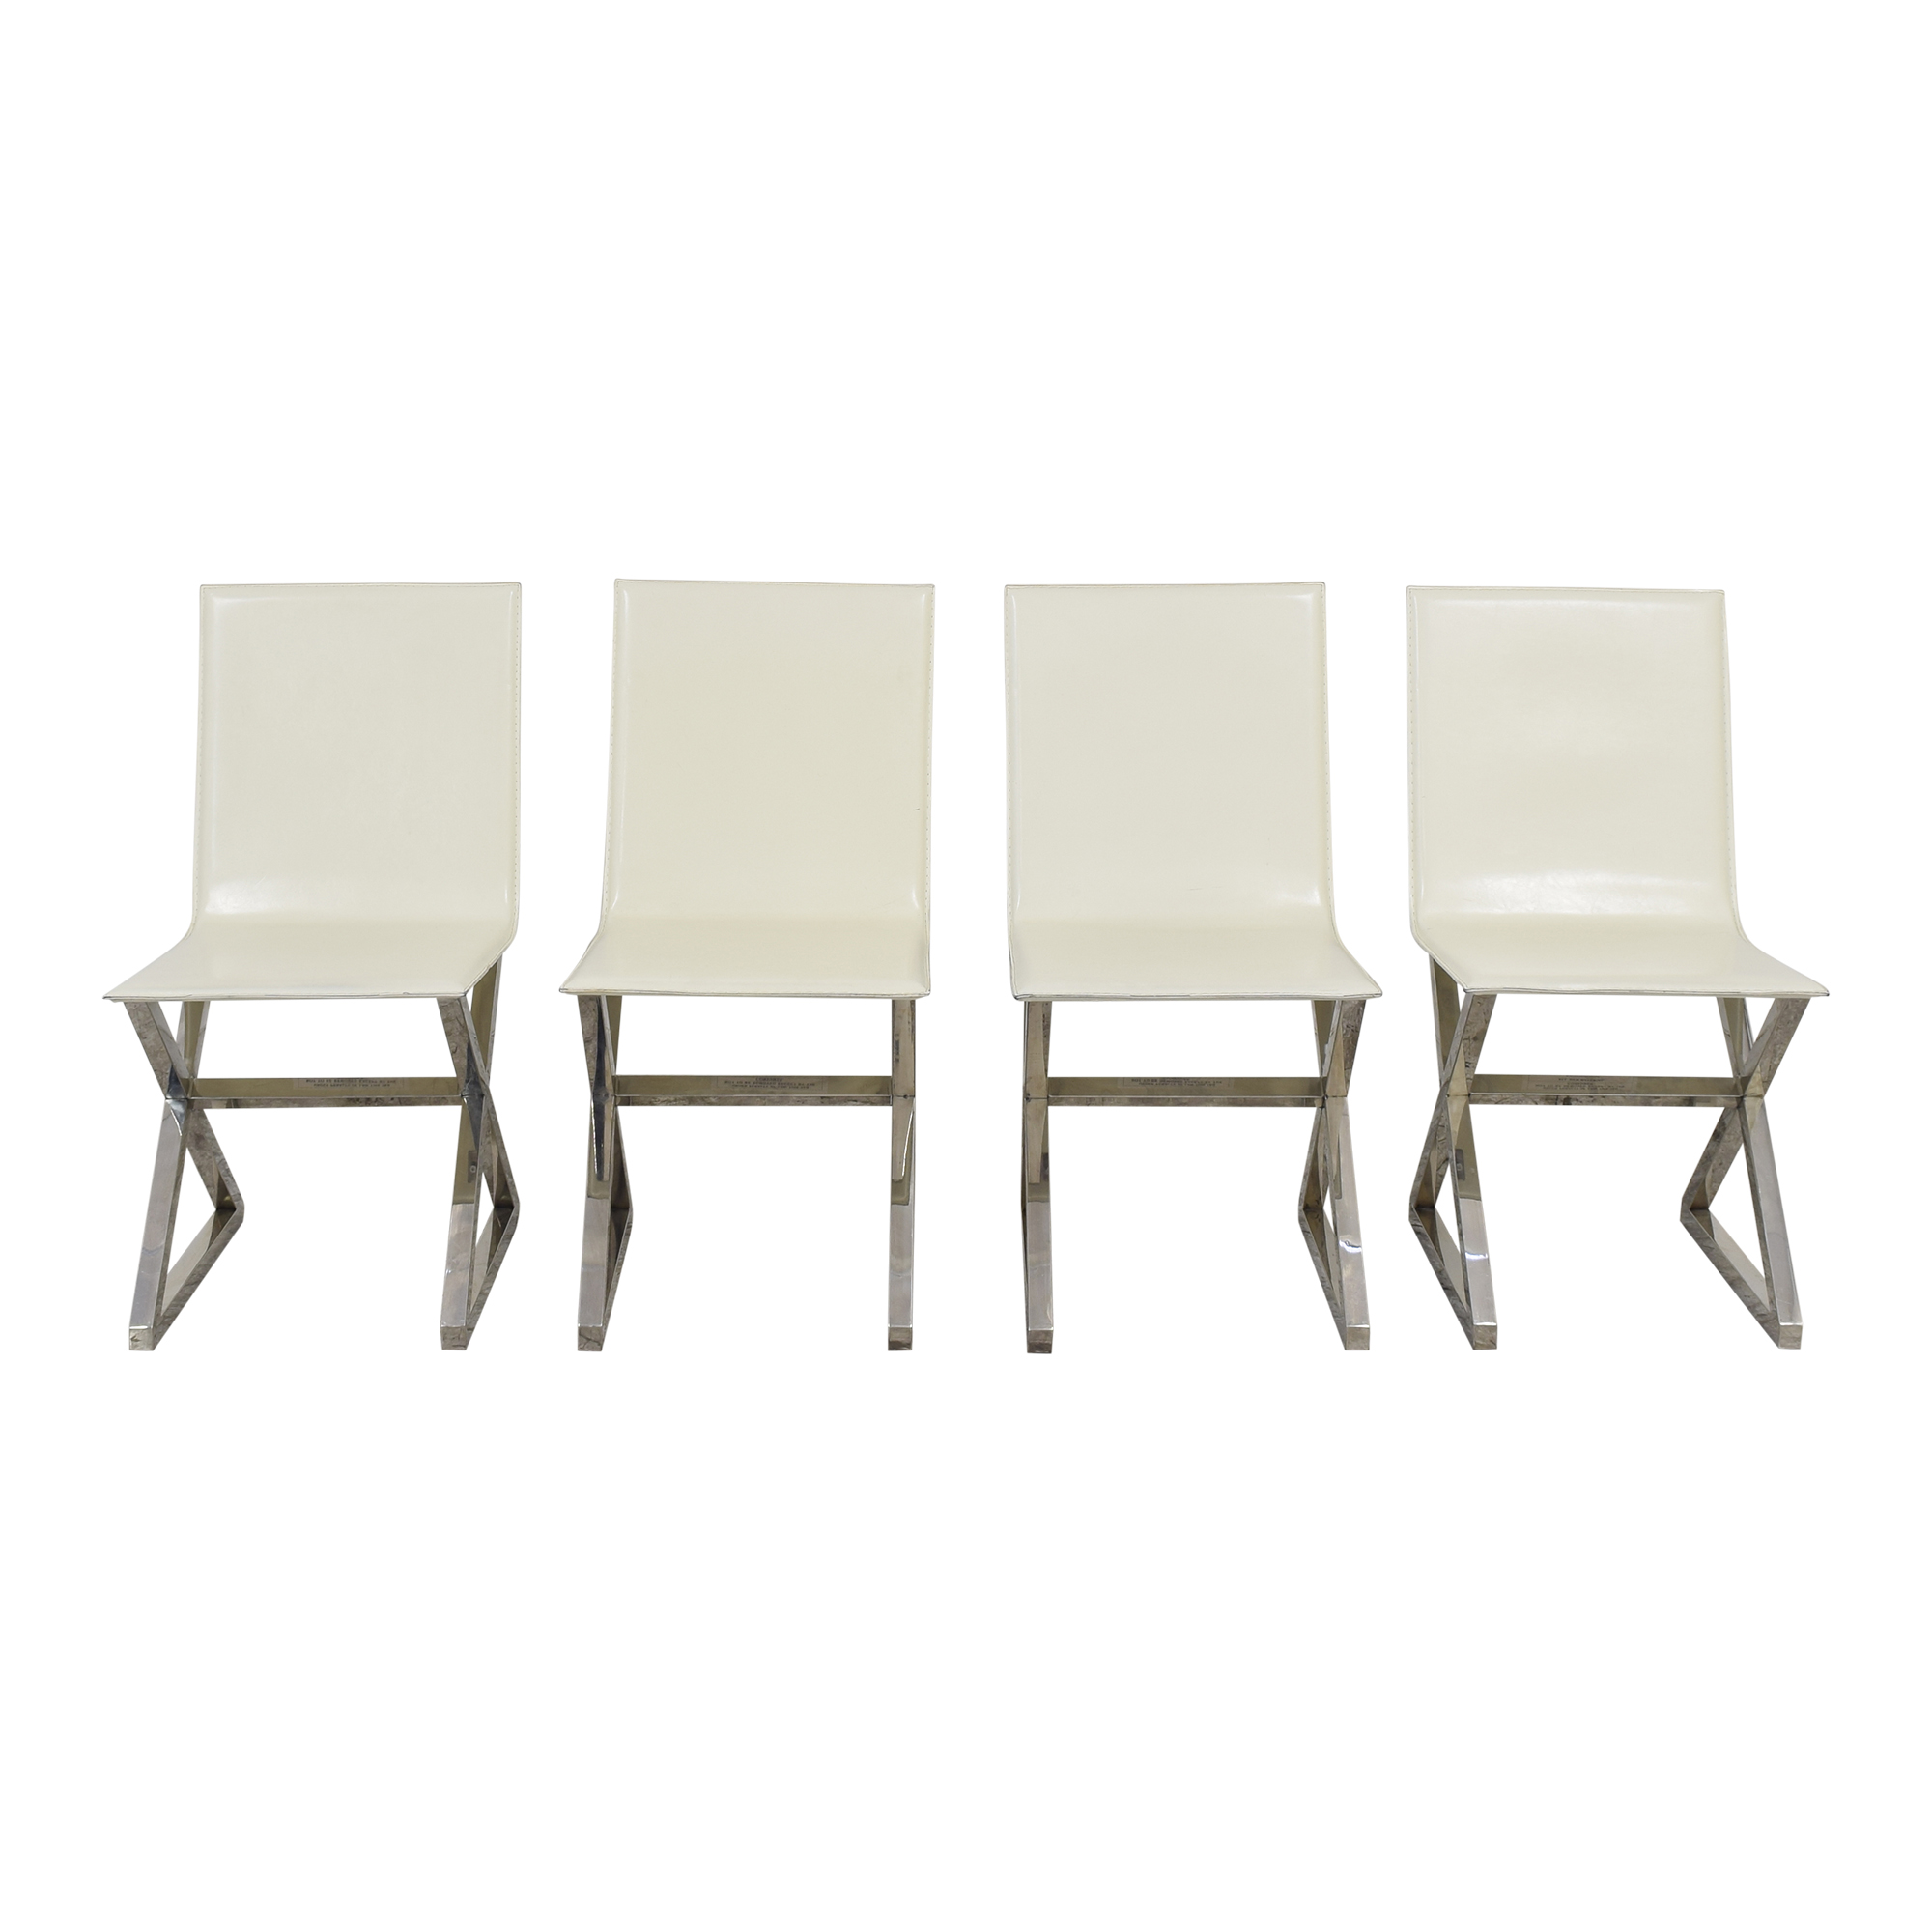 Z Gallerie Z Gallerie Axis Dining Chairs ct